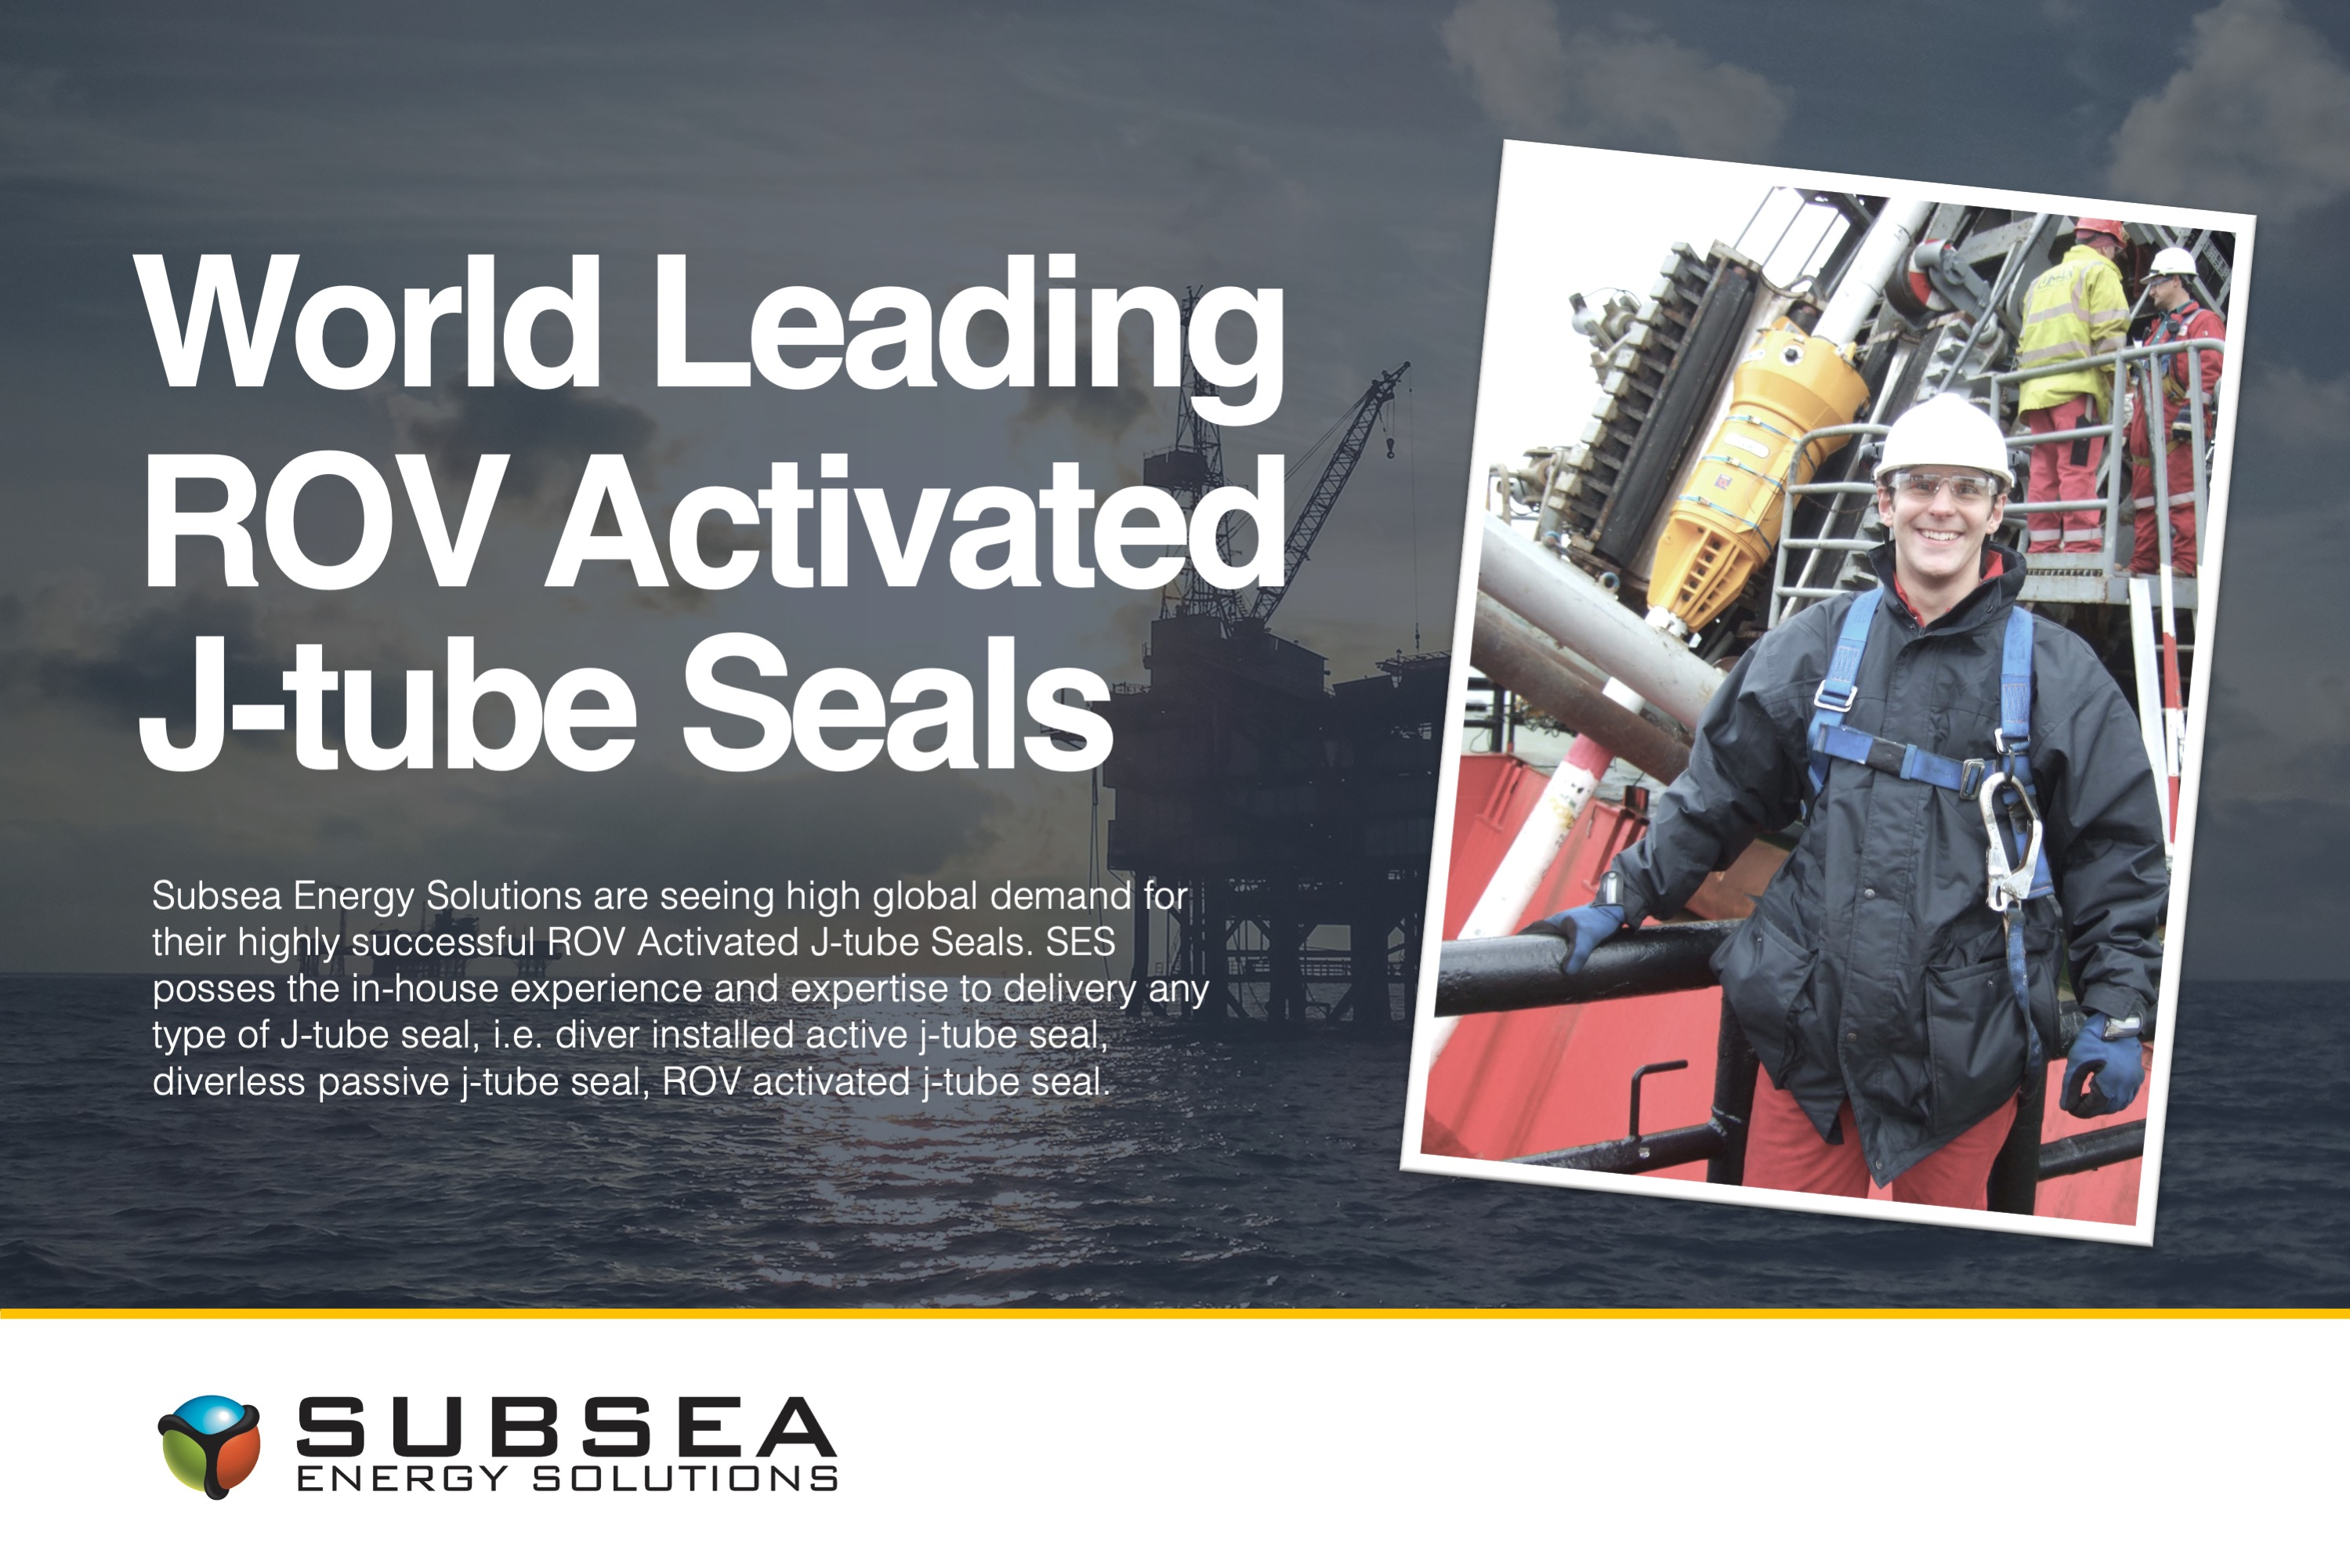 World leading ROV Activated J-tube Seals in demand